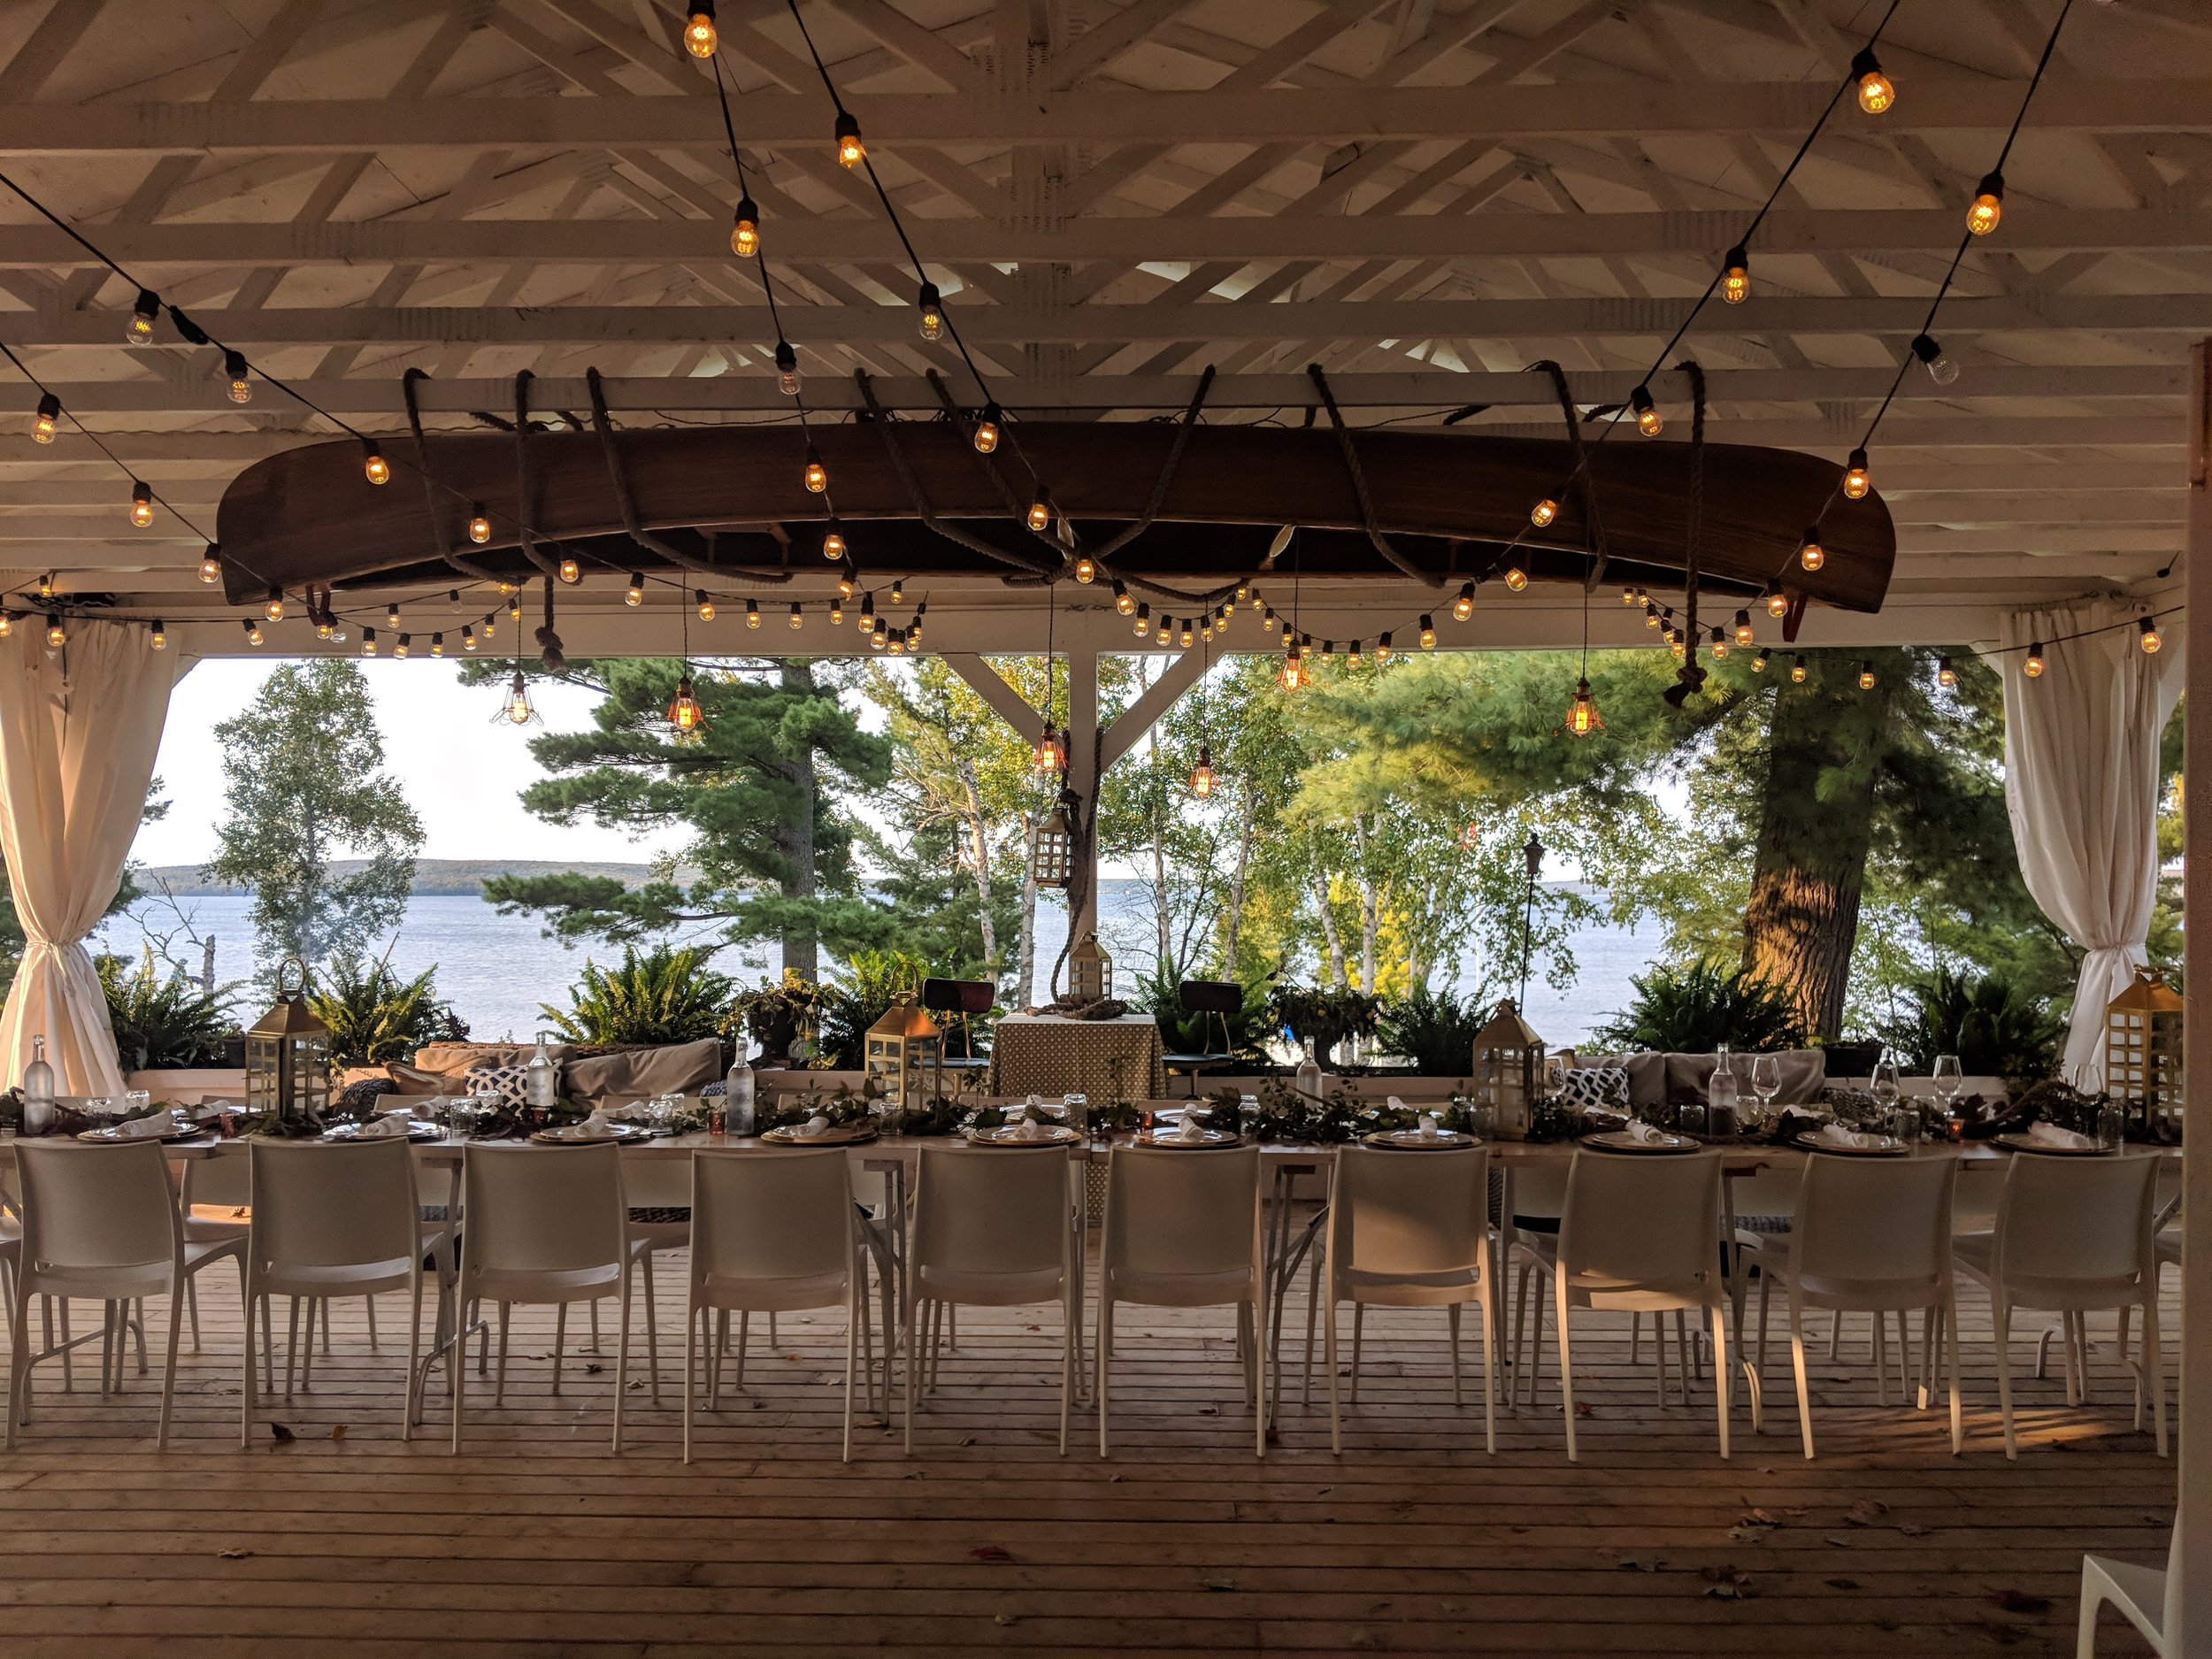 Outdoor Patio Dining with Lakeside Views